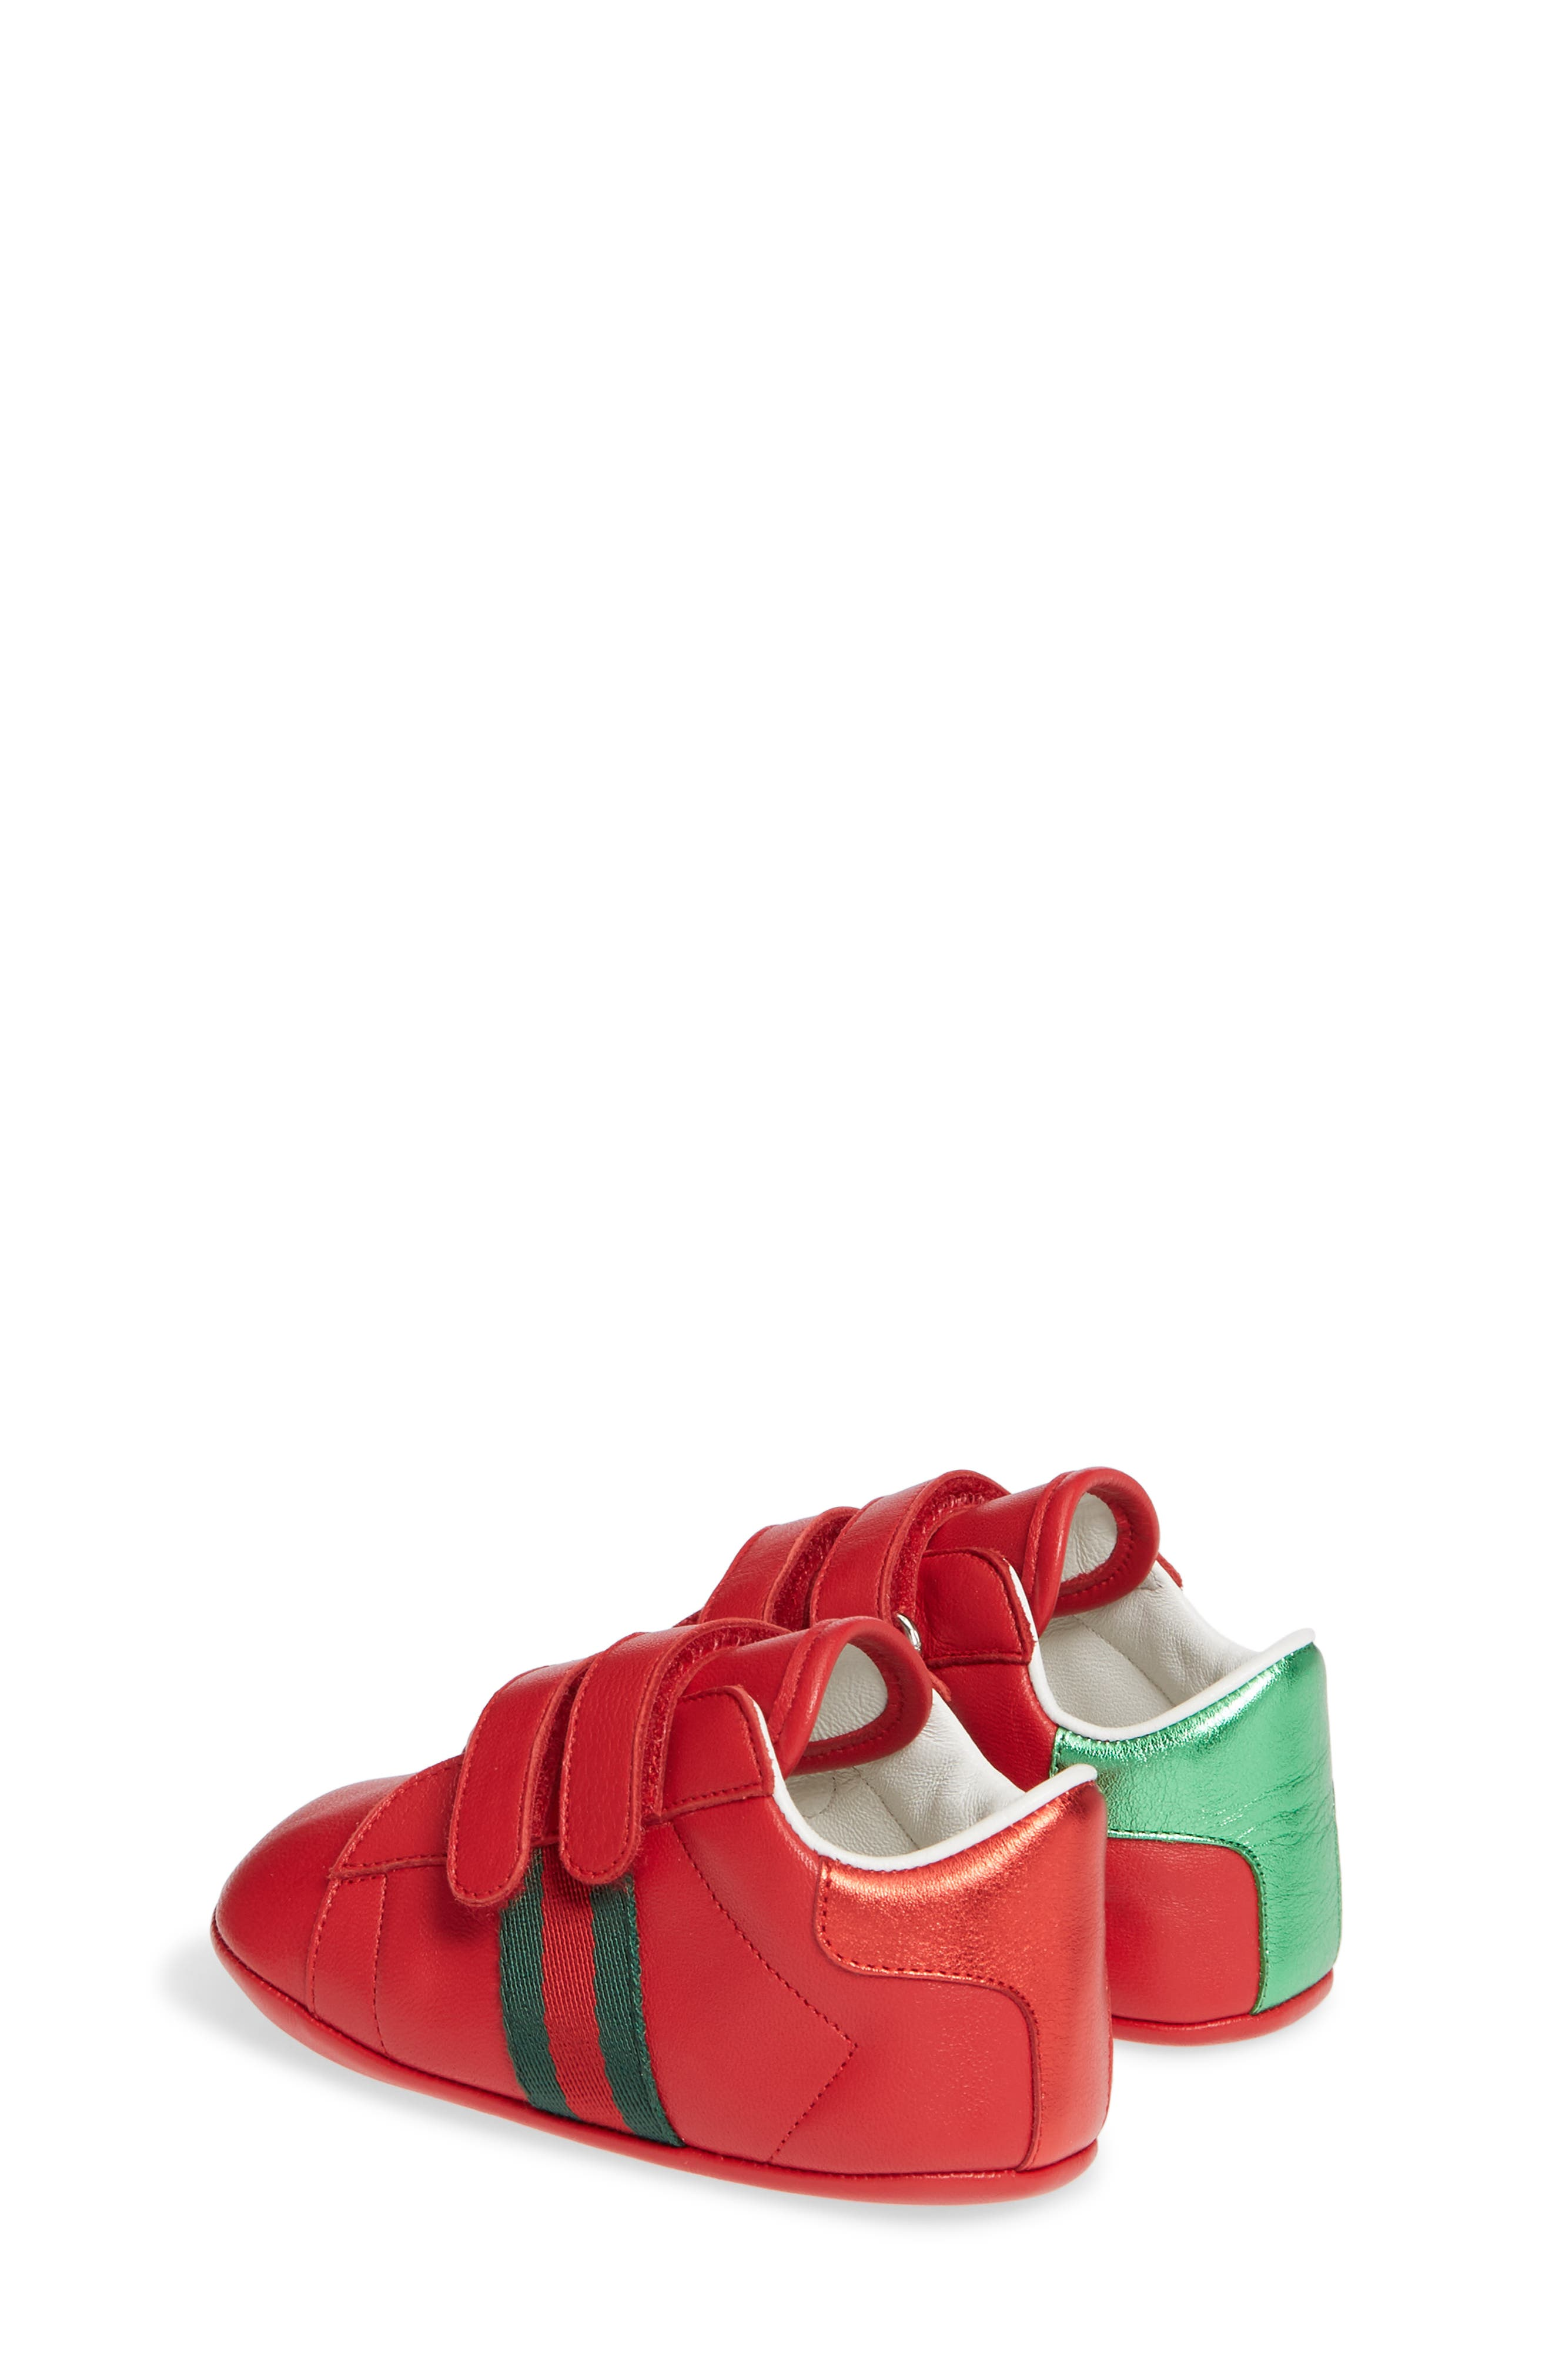 GUCCI,                             Ace Crib Shoe,                             Alternate thumbnail 3, color,                             RED